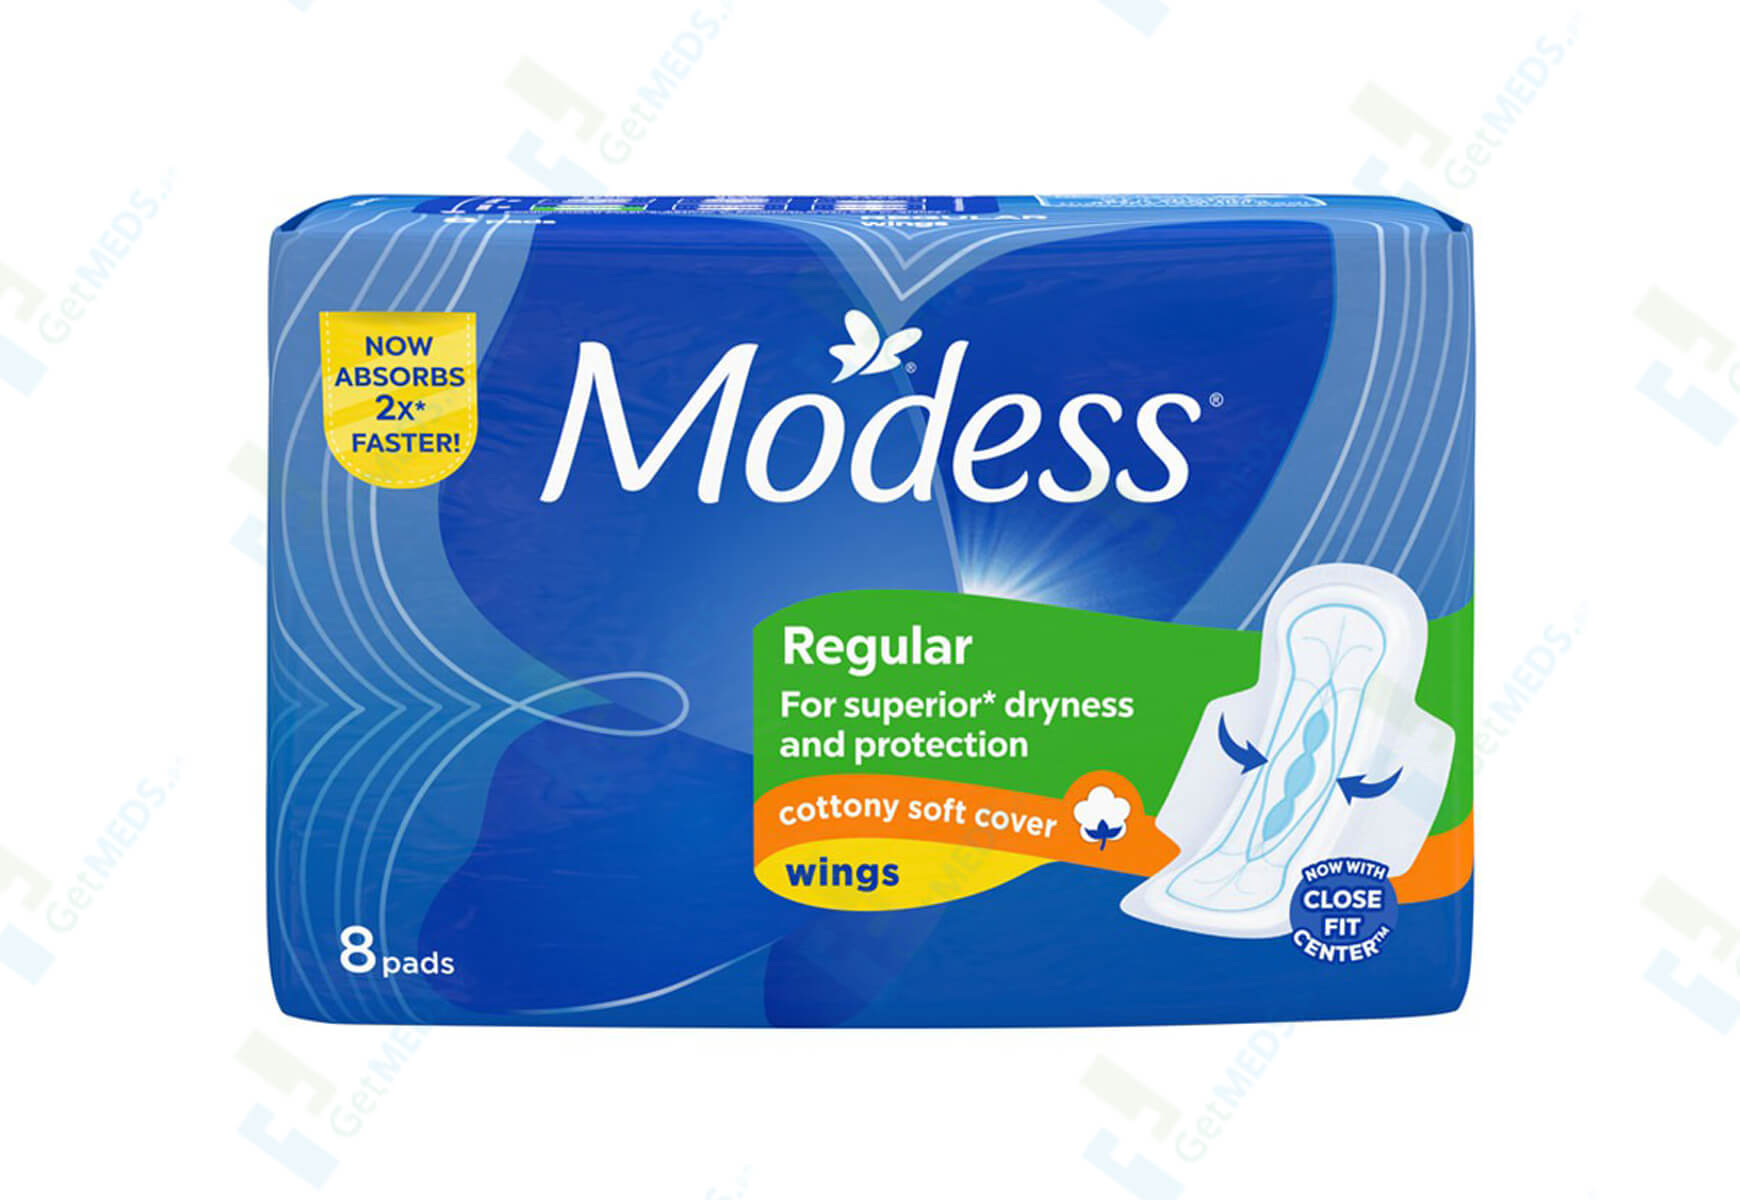 Modess Regular with Wings